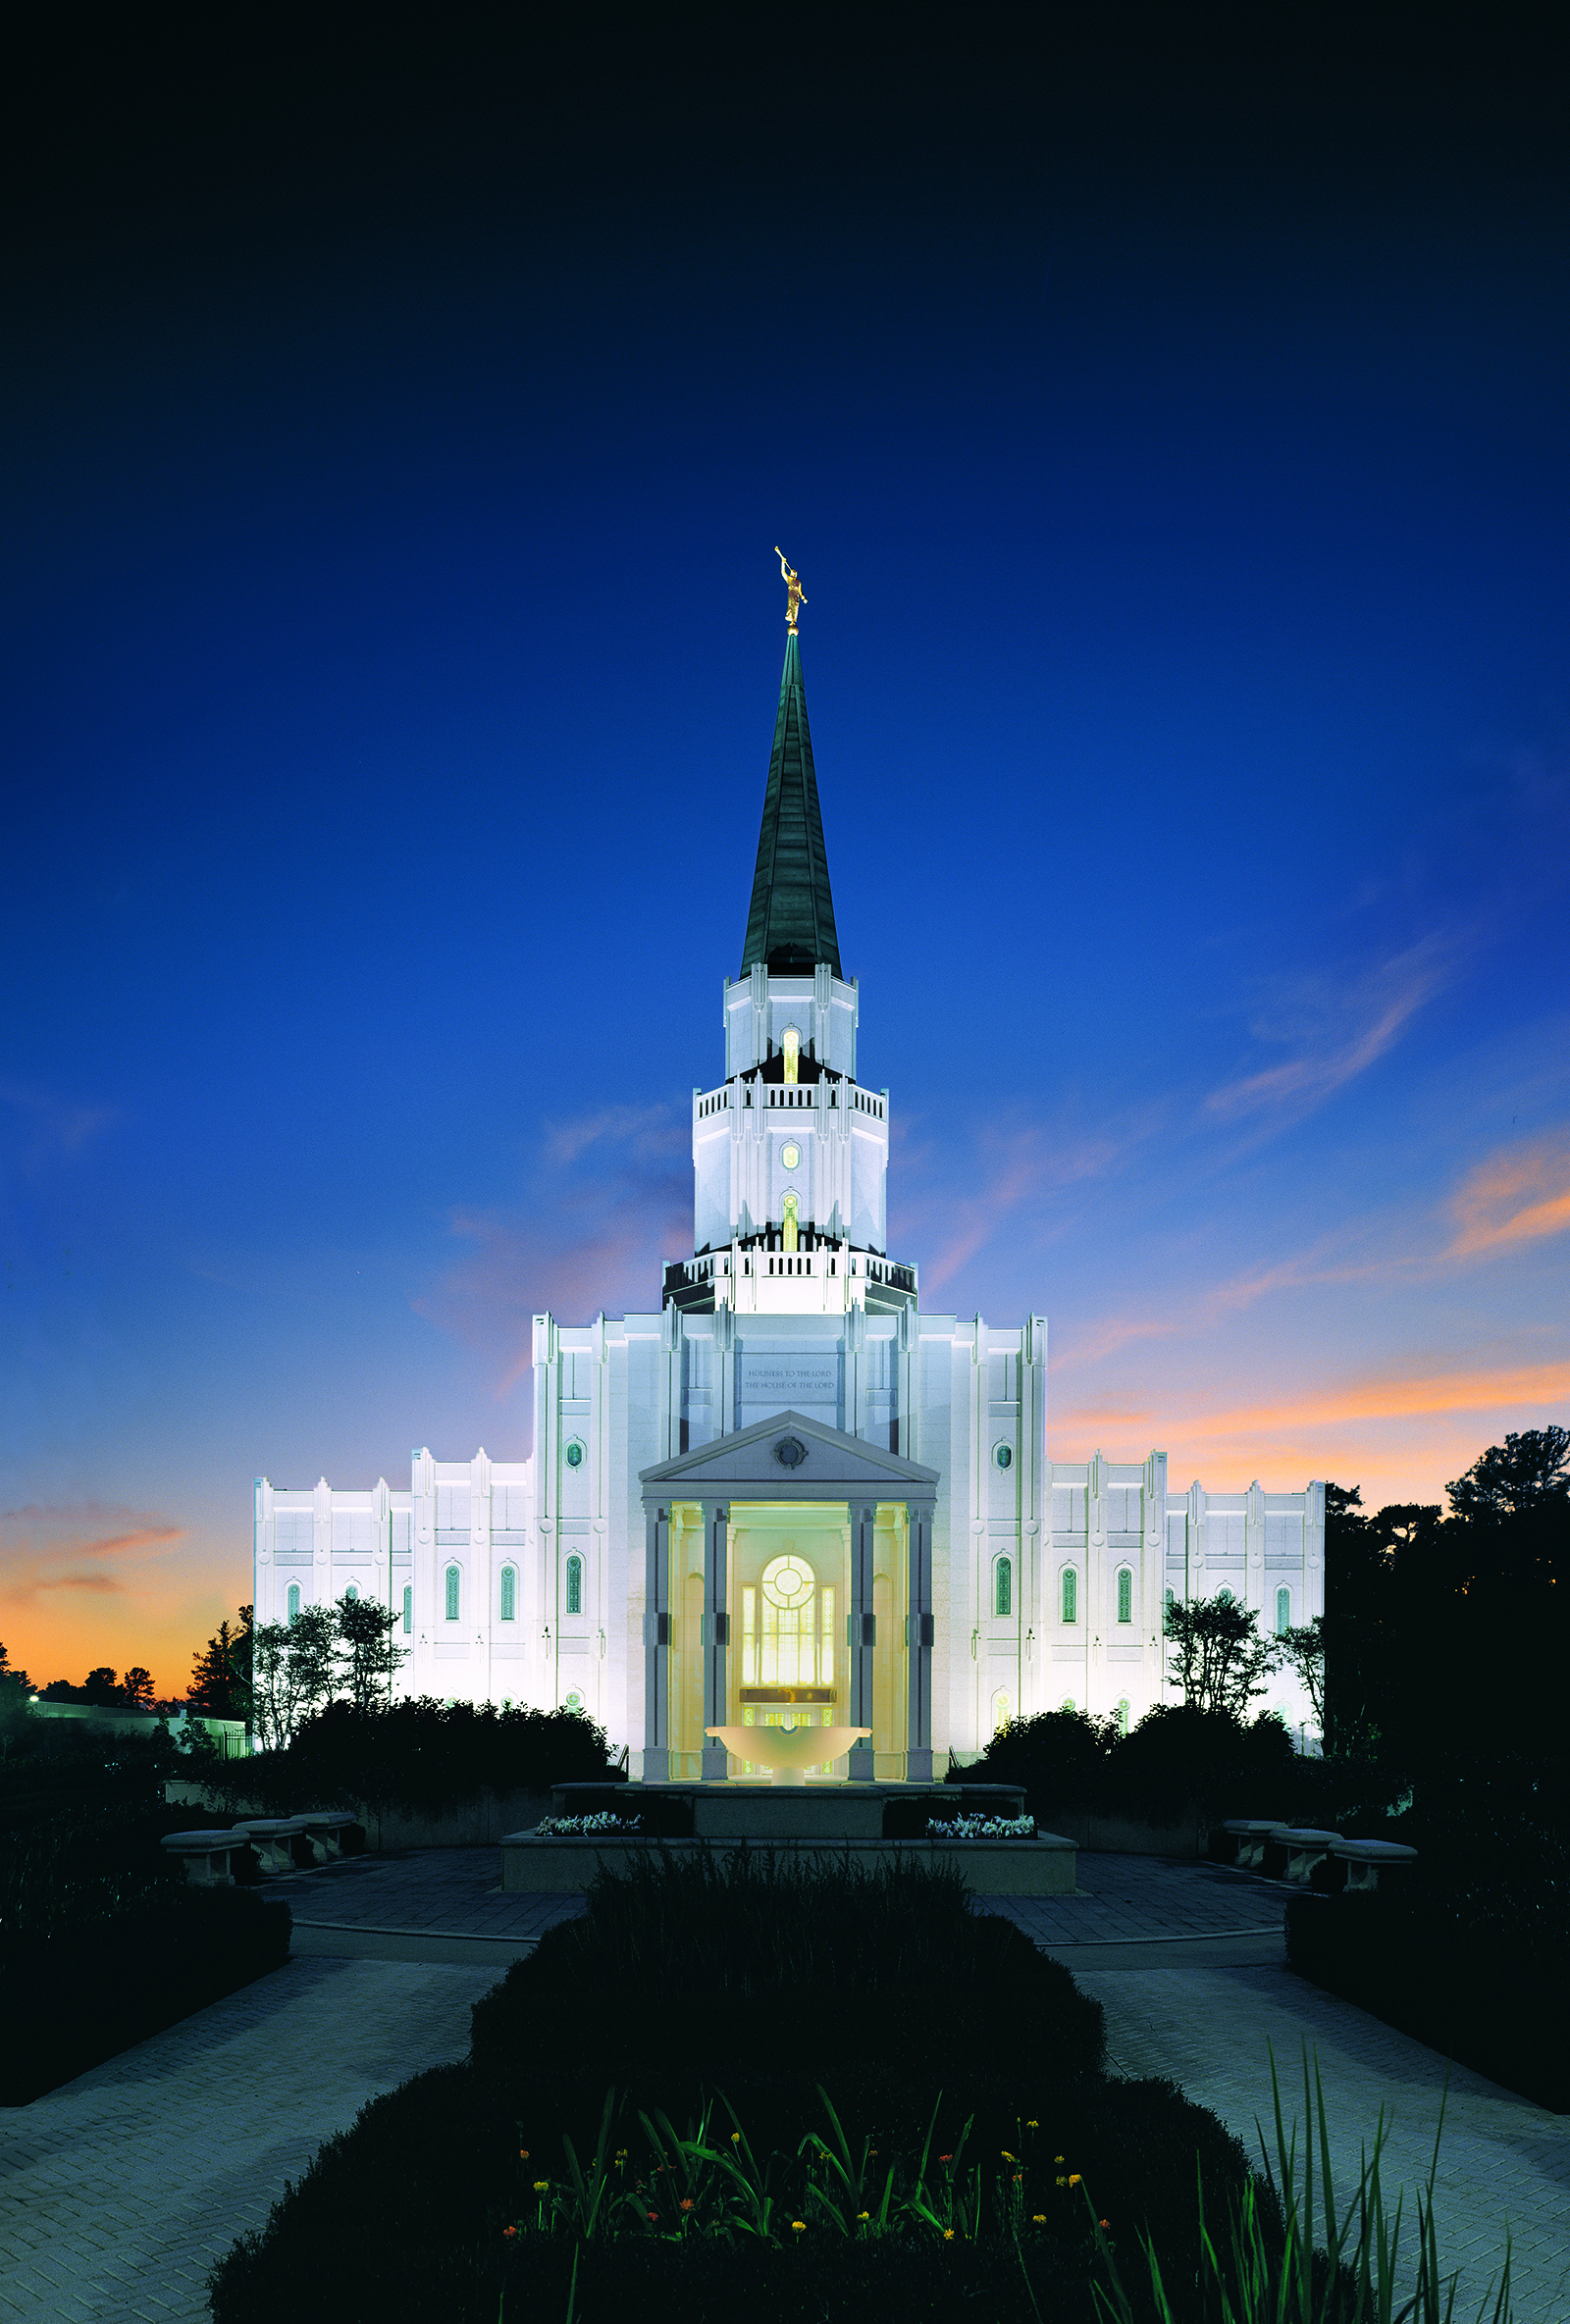 The houston texas temple at night - Lds temple wallpaper ...